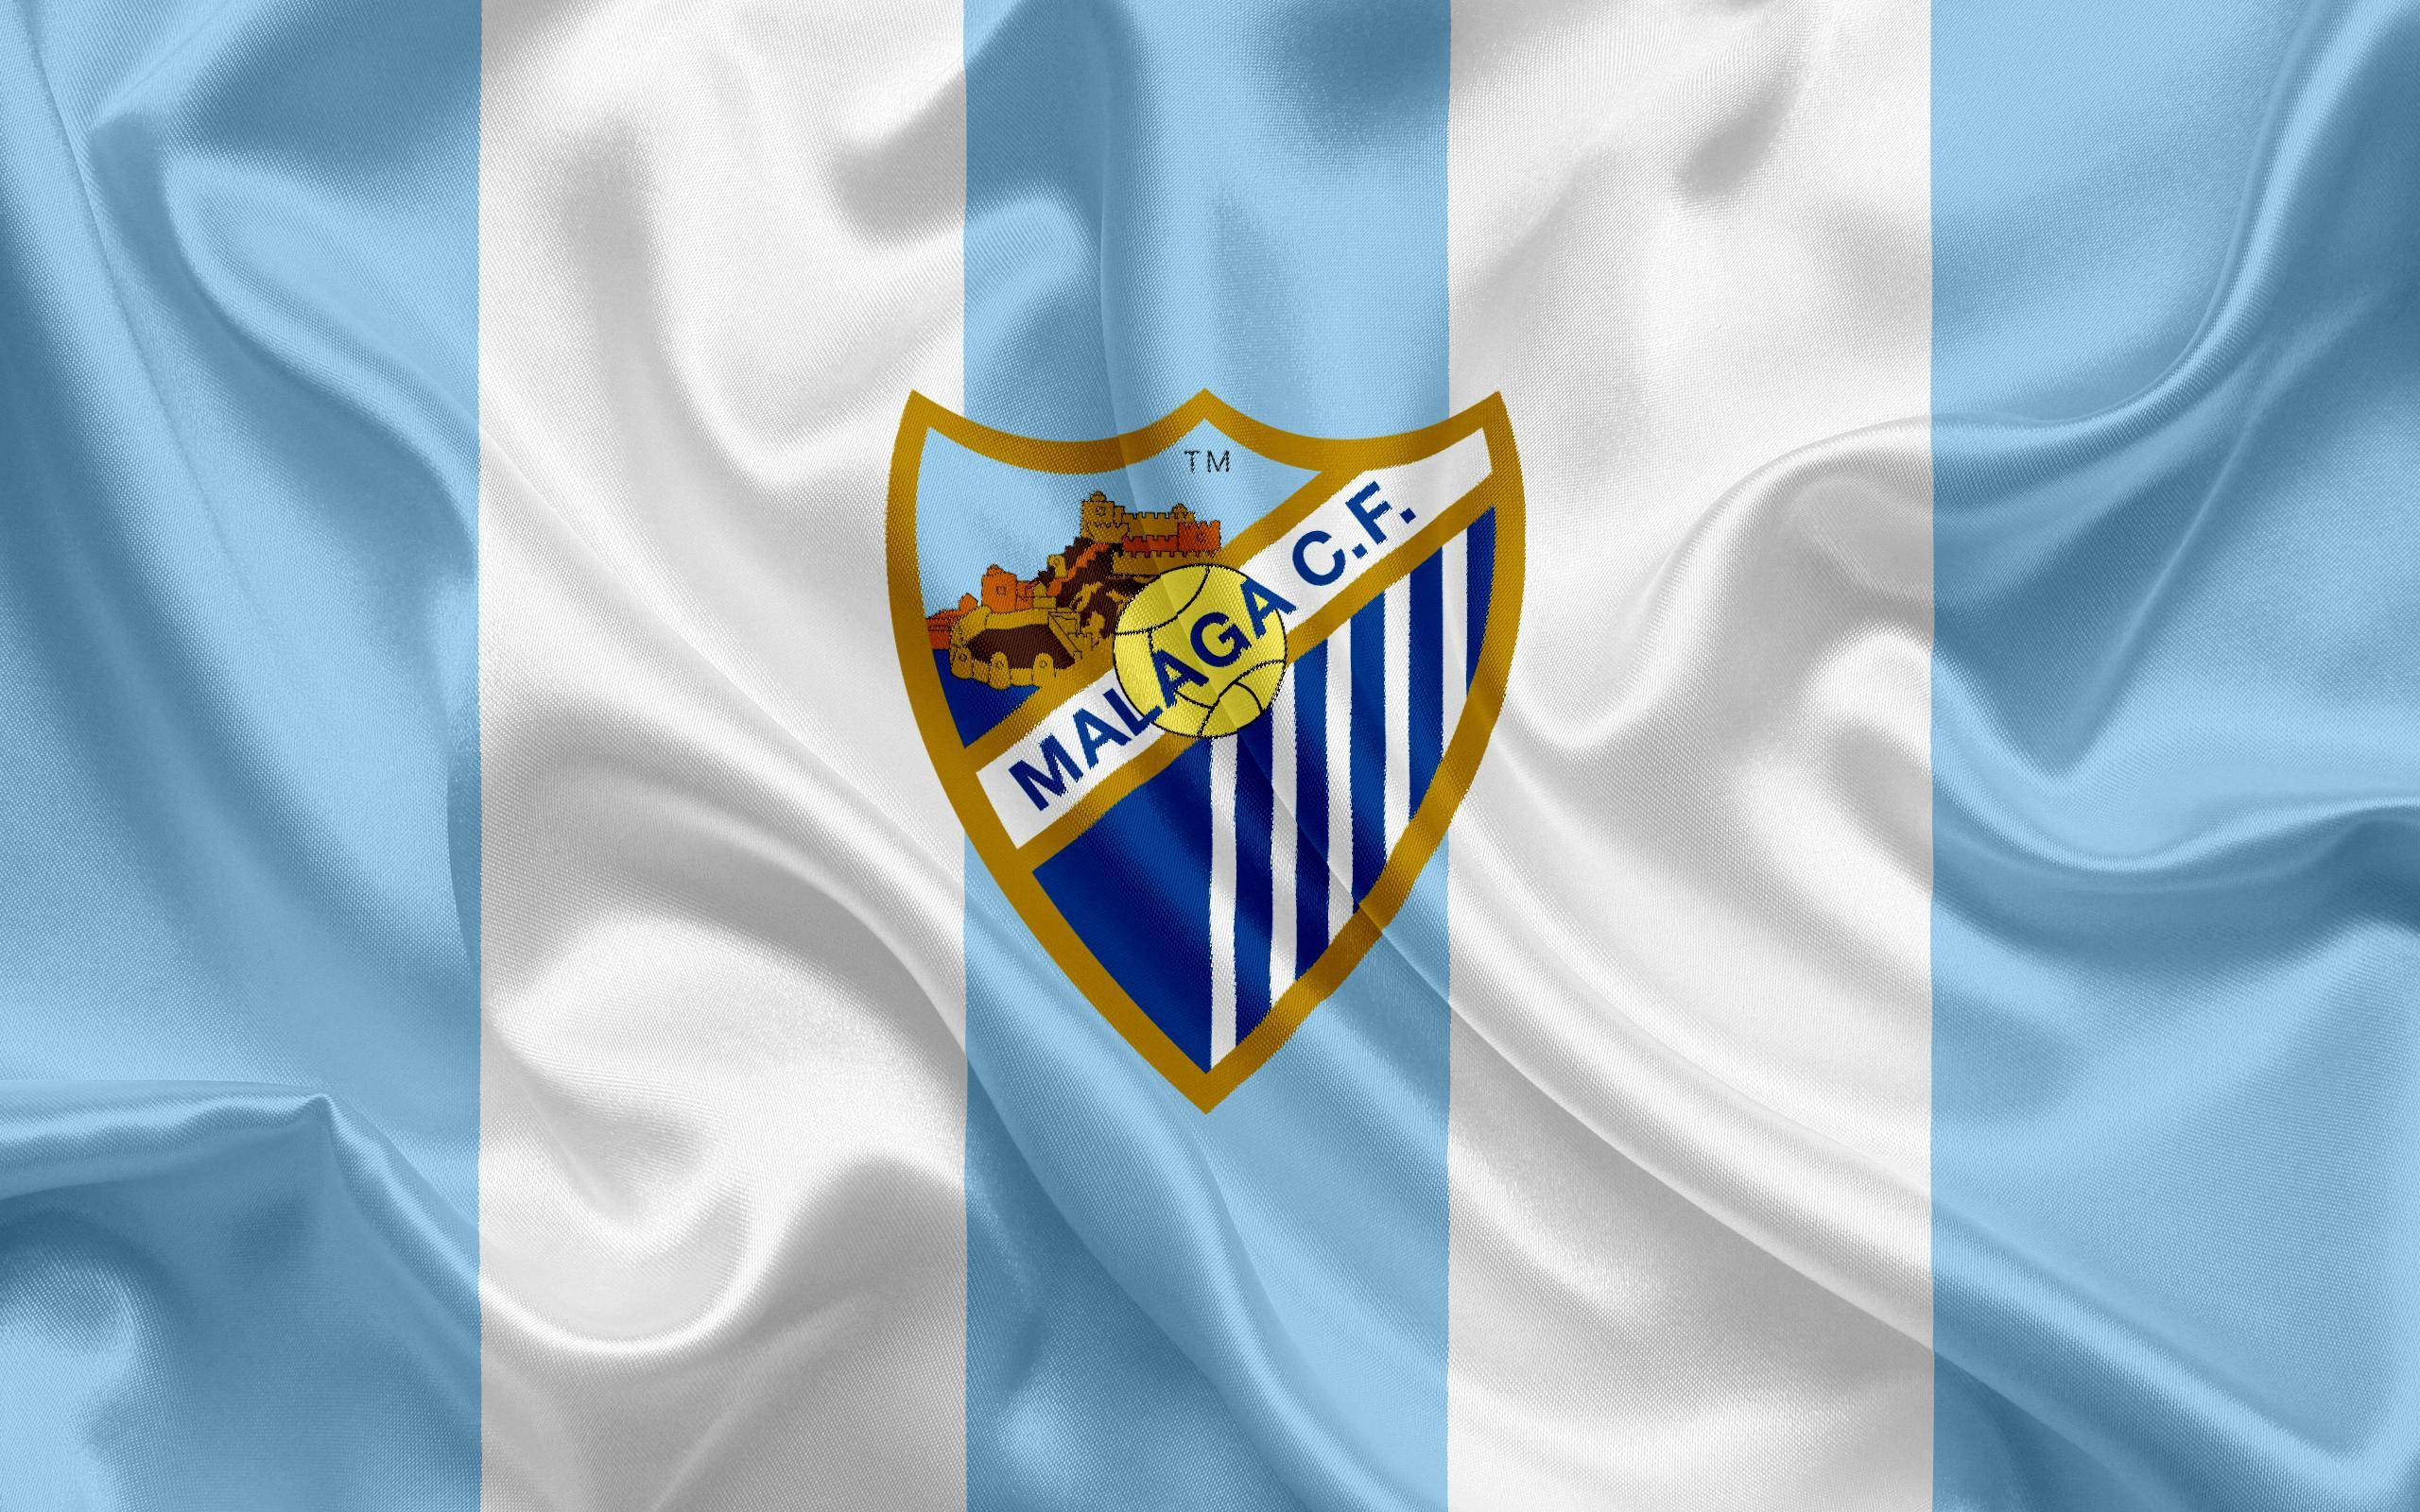 Download wallpapers Malaga FC, football club, Malaga emblem, logo